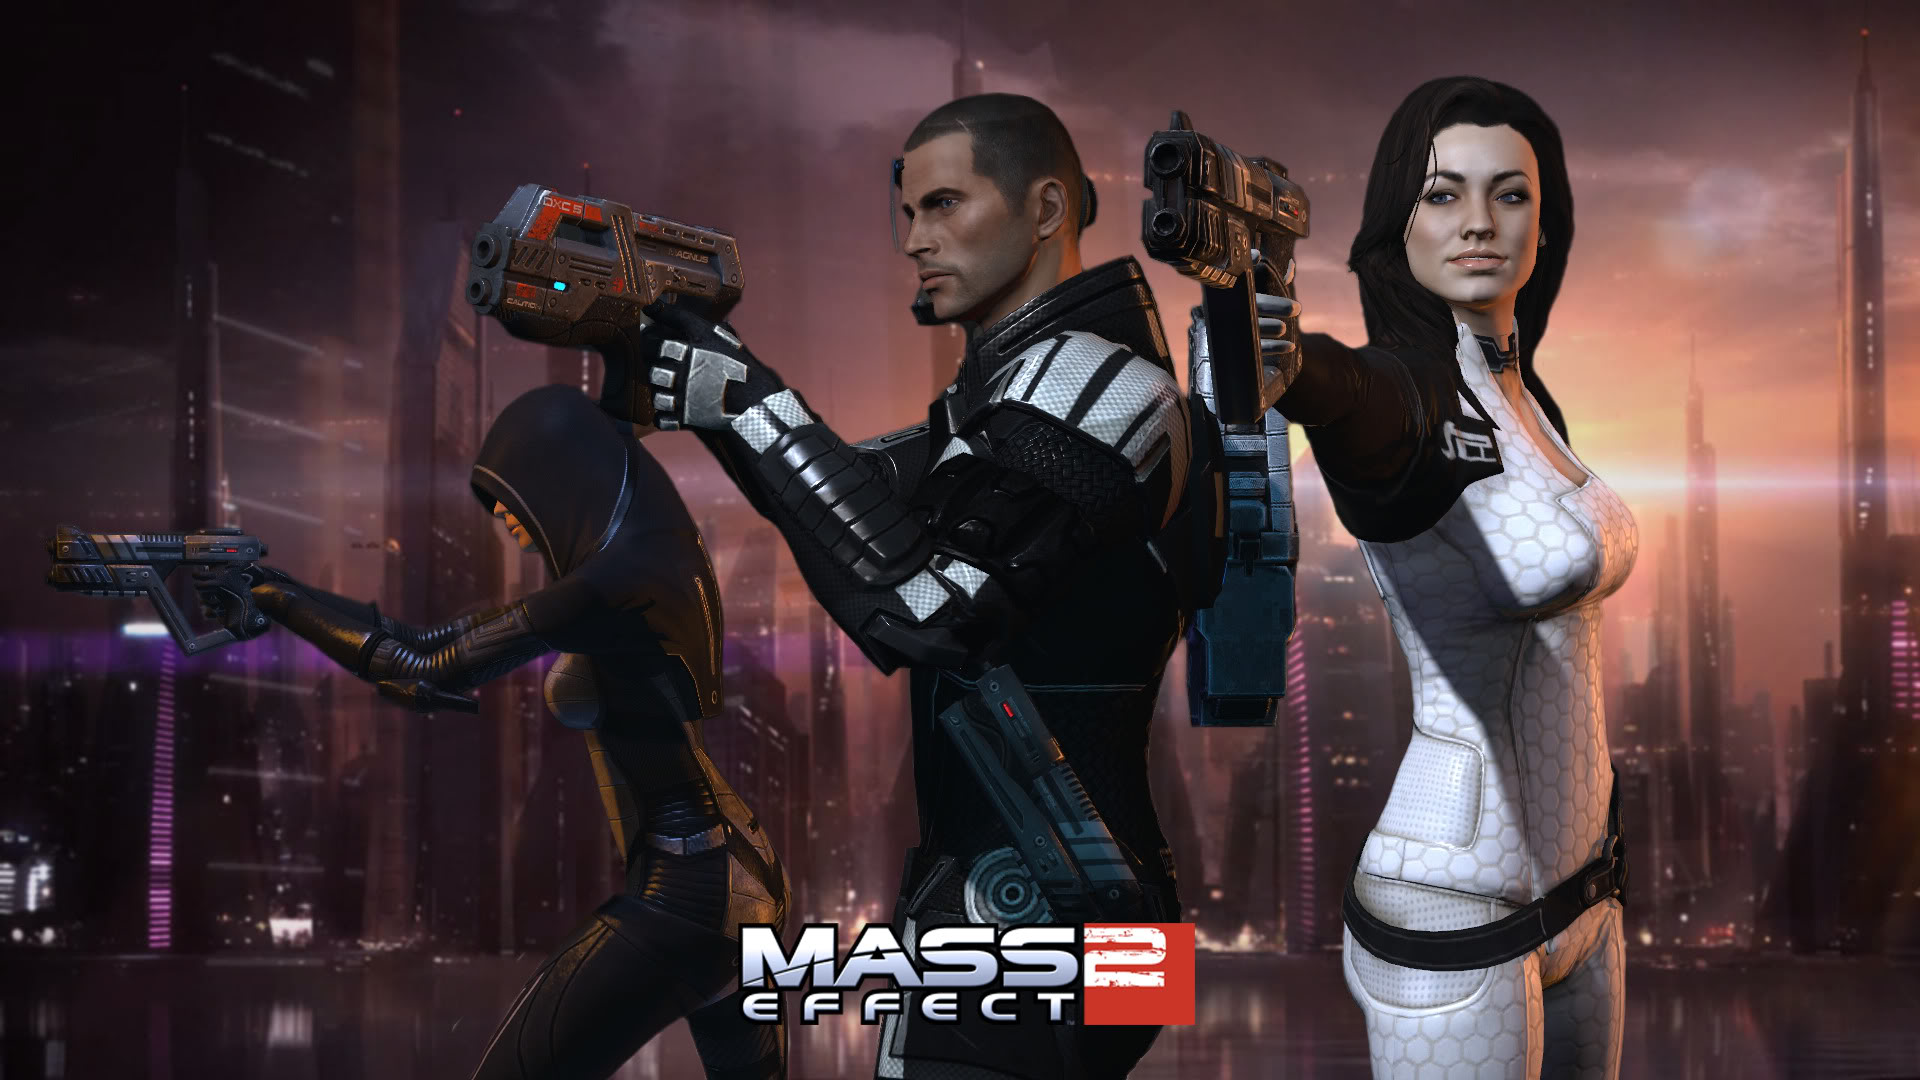 Mass effect 2 ps3 how to download  hardcore photo